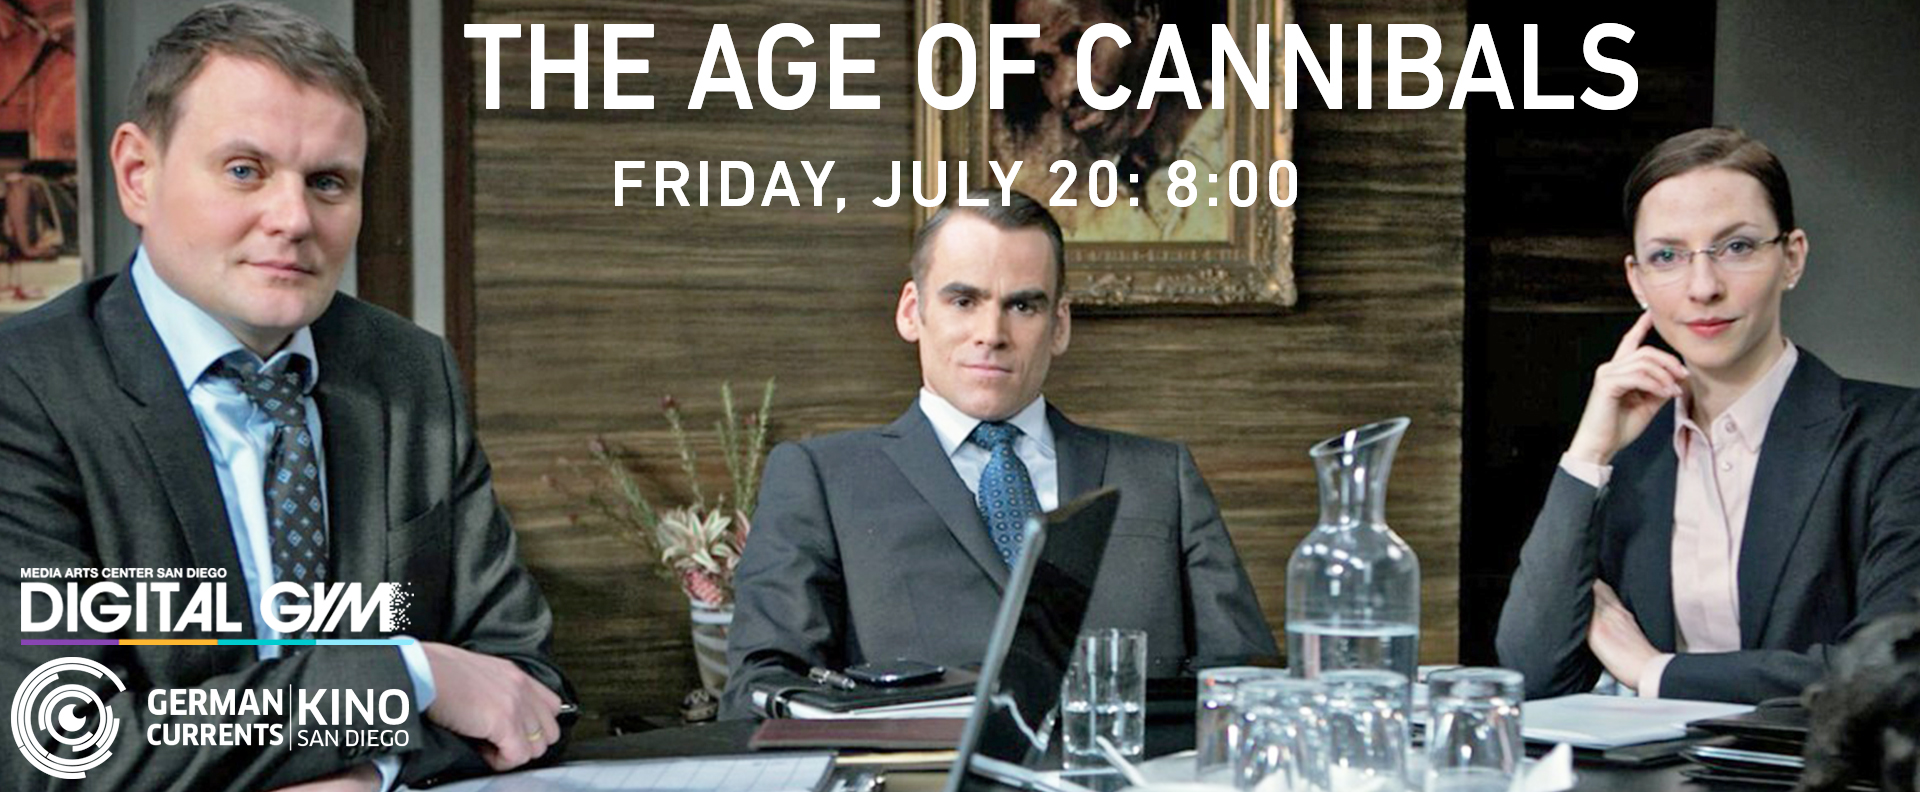 German Currents Kino Presents: The Age of Cannibals (July 20)